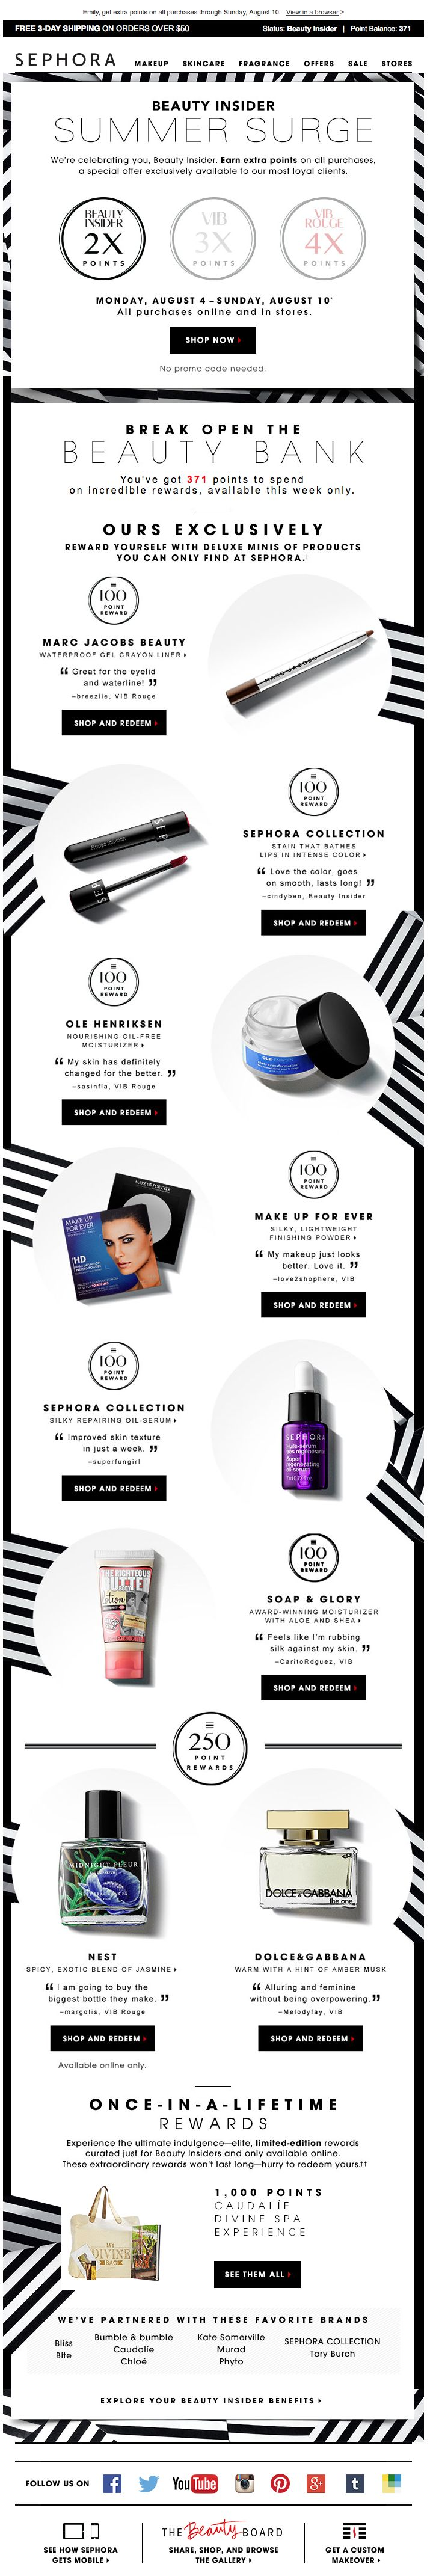 Sephora Insiders, loyalty email. Listed out my insider points